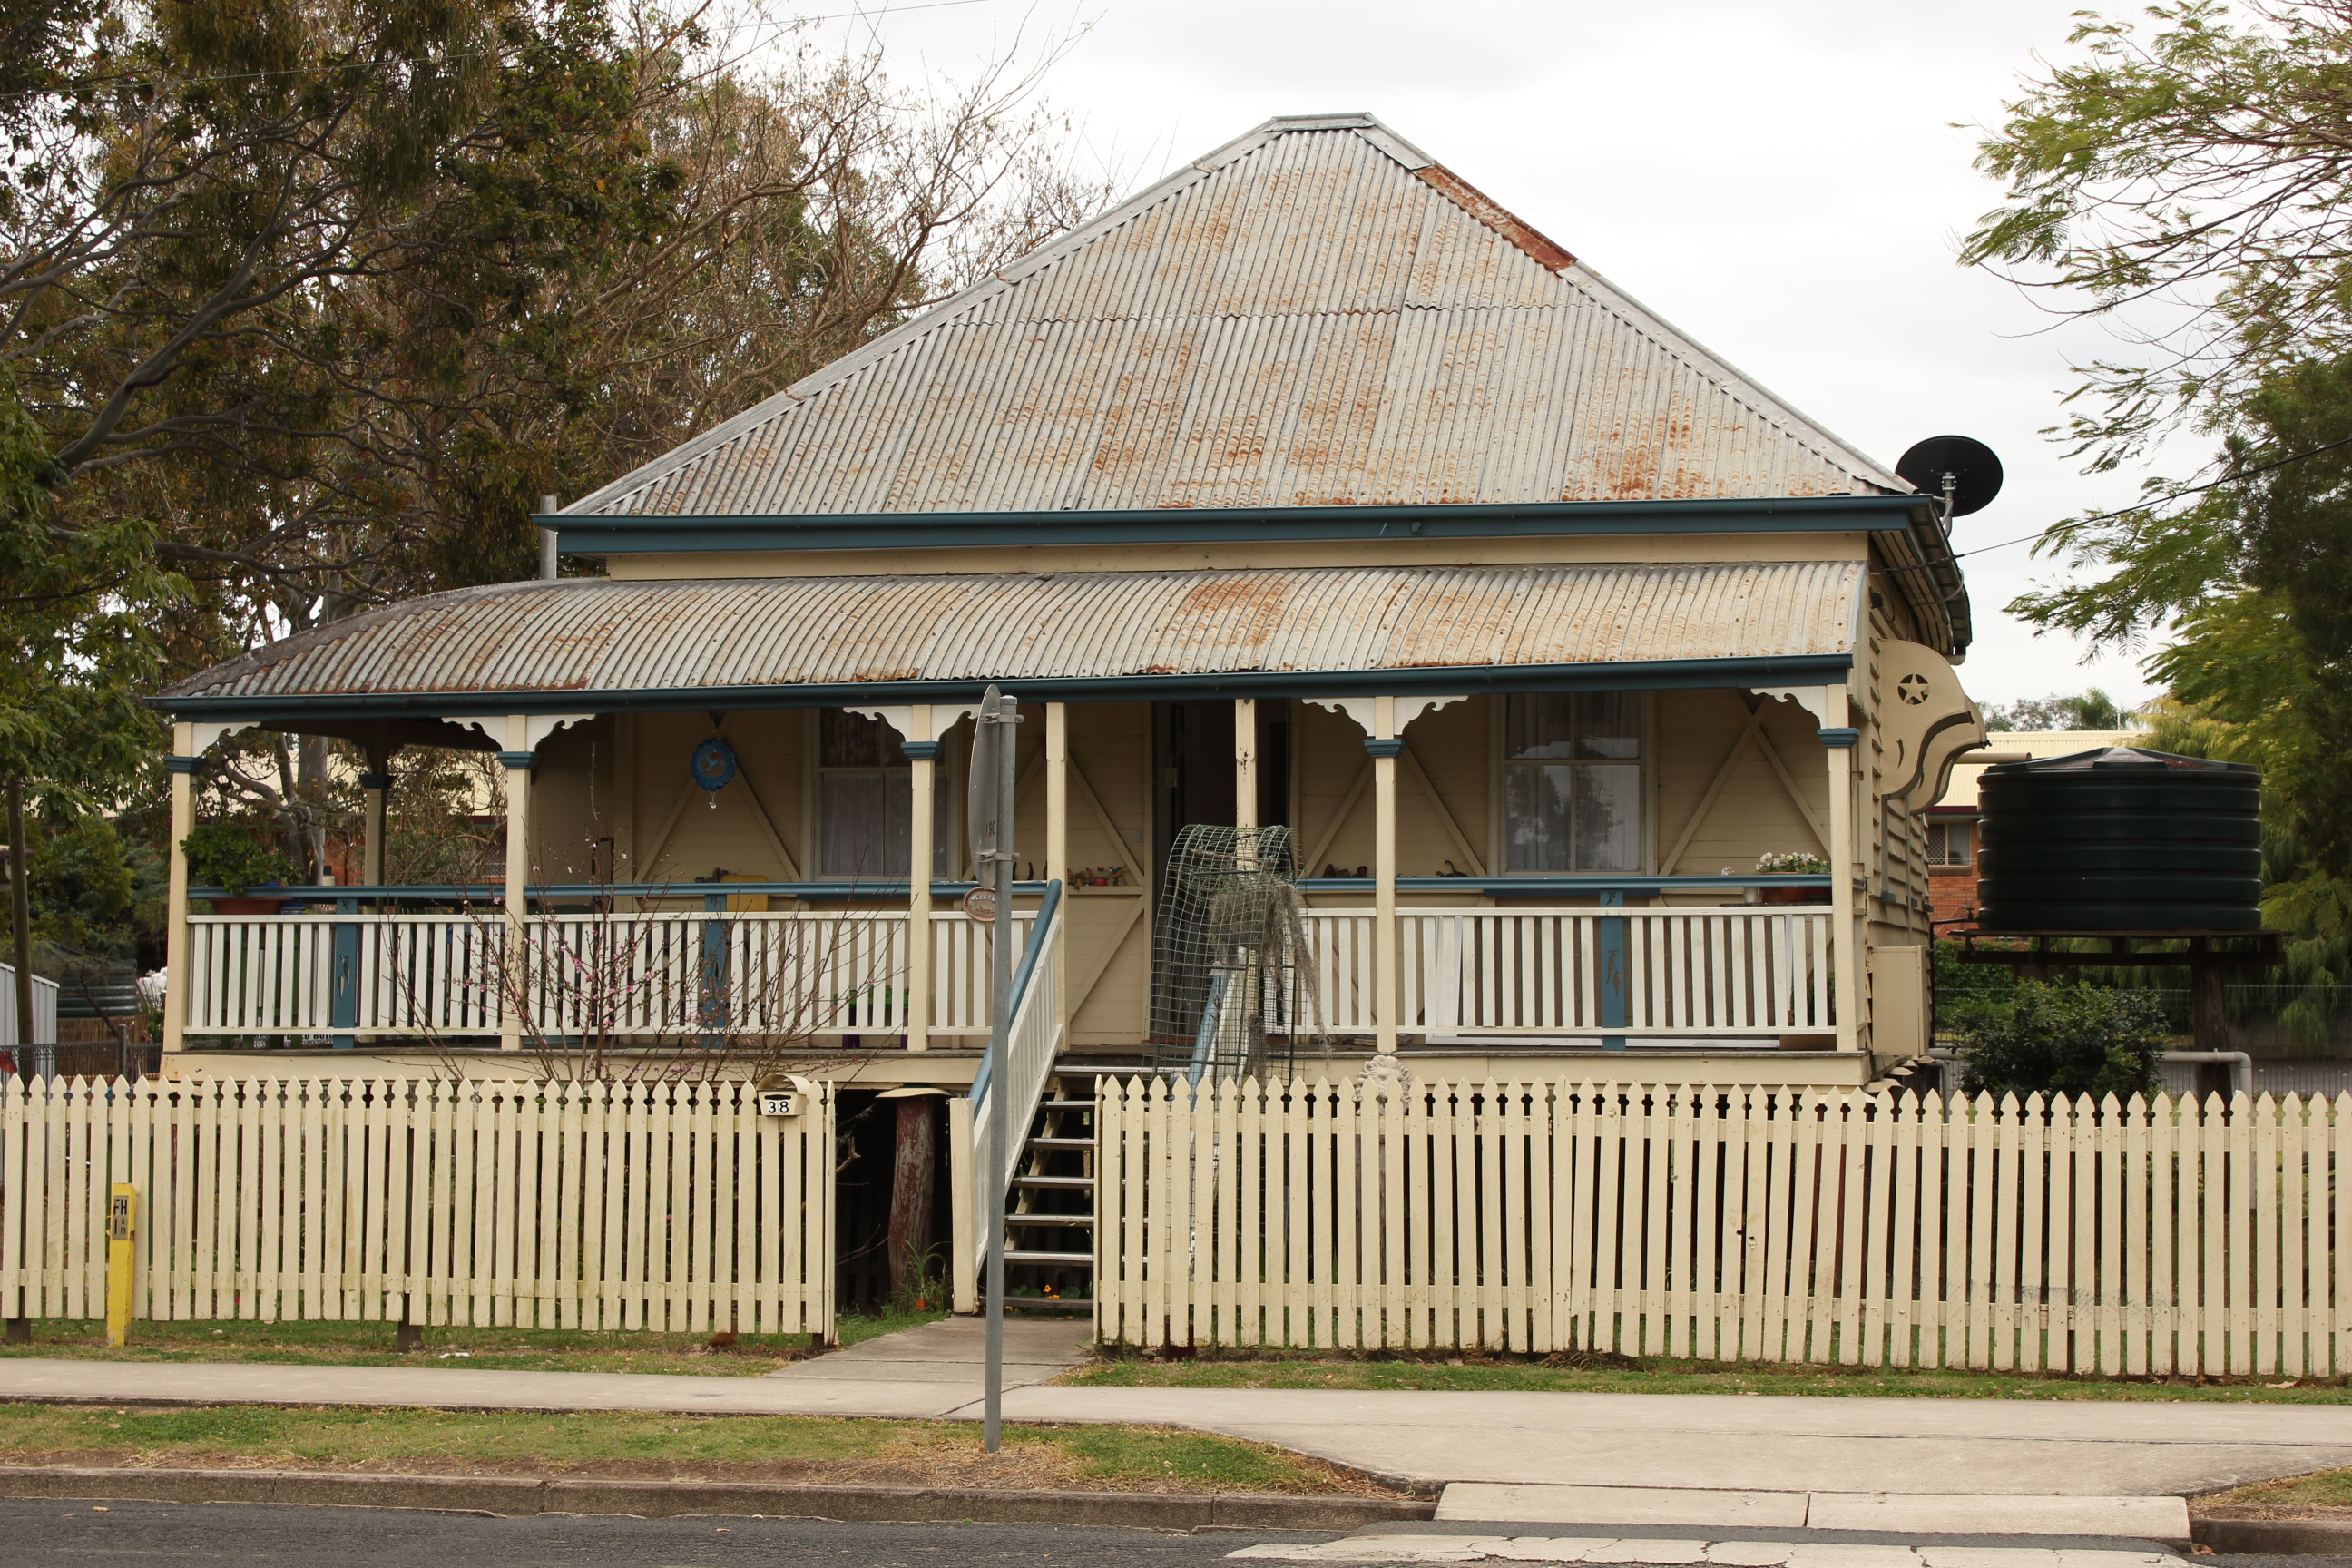 Design Your Own Queenslander Home ~ Design Your Own Home - ^